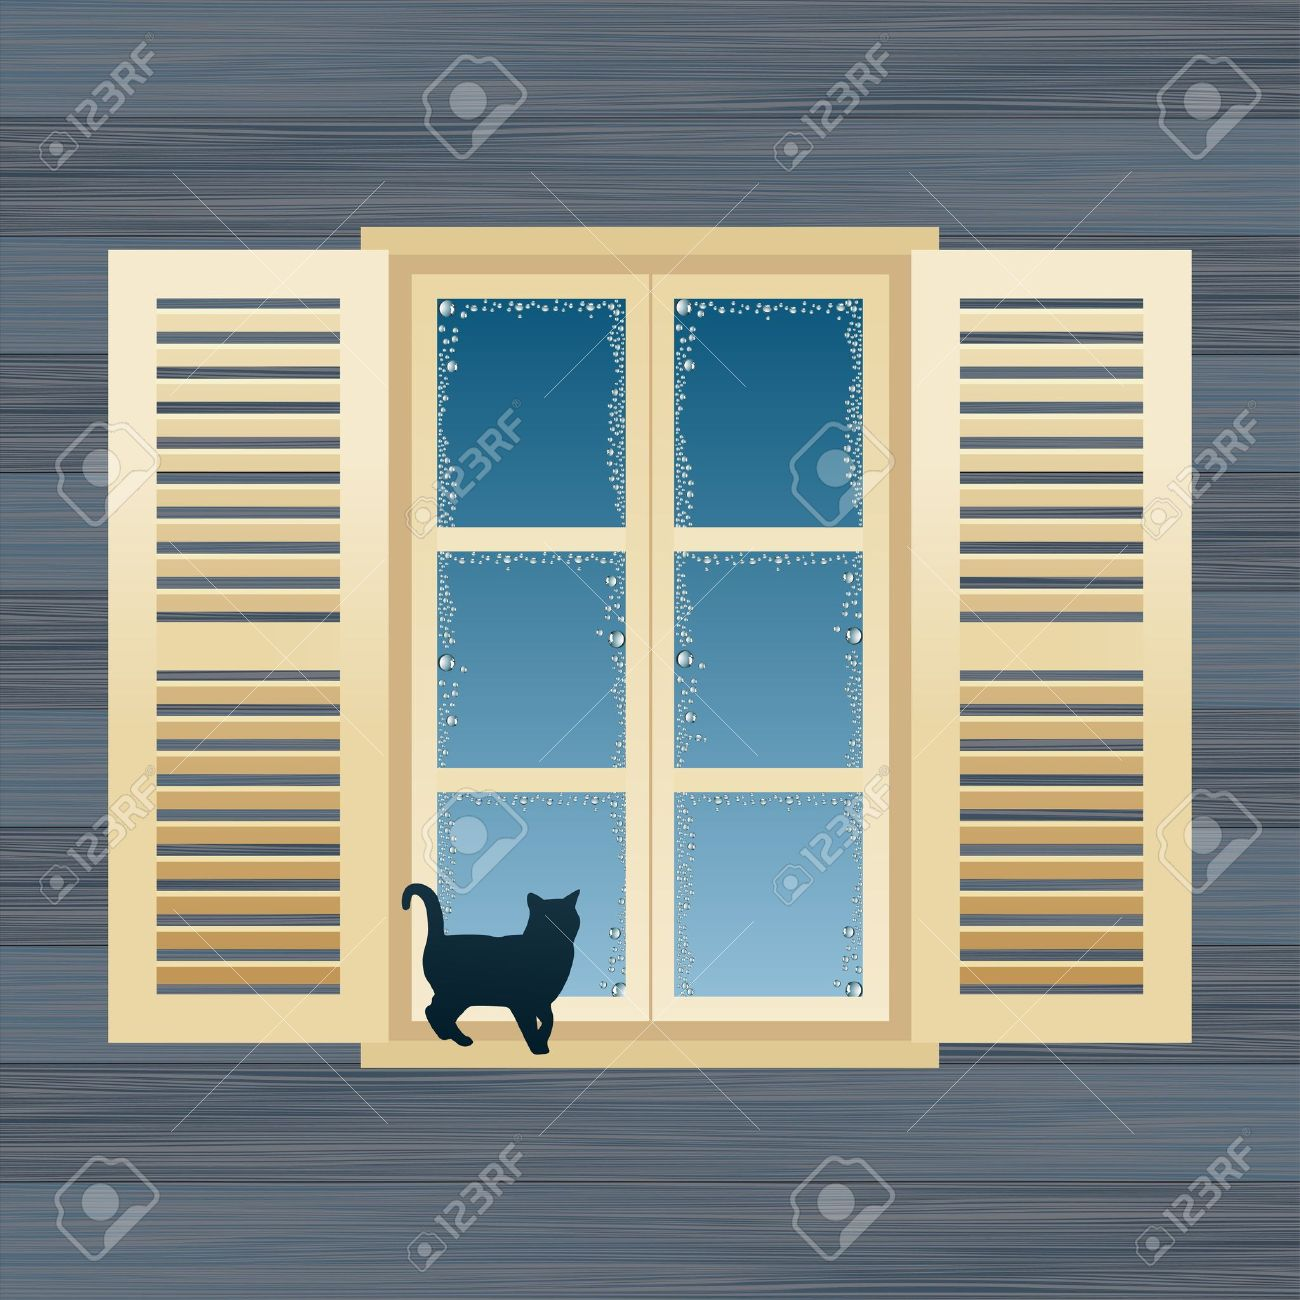 Animated Country House Window Vector Illustration Royalty Free Cliparts Vectors And Stock Illustration Image 10340144